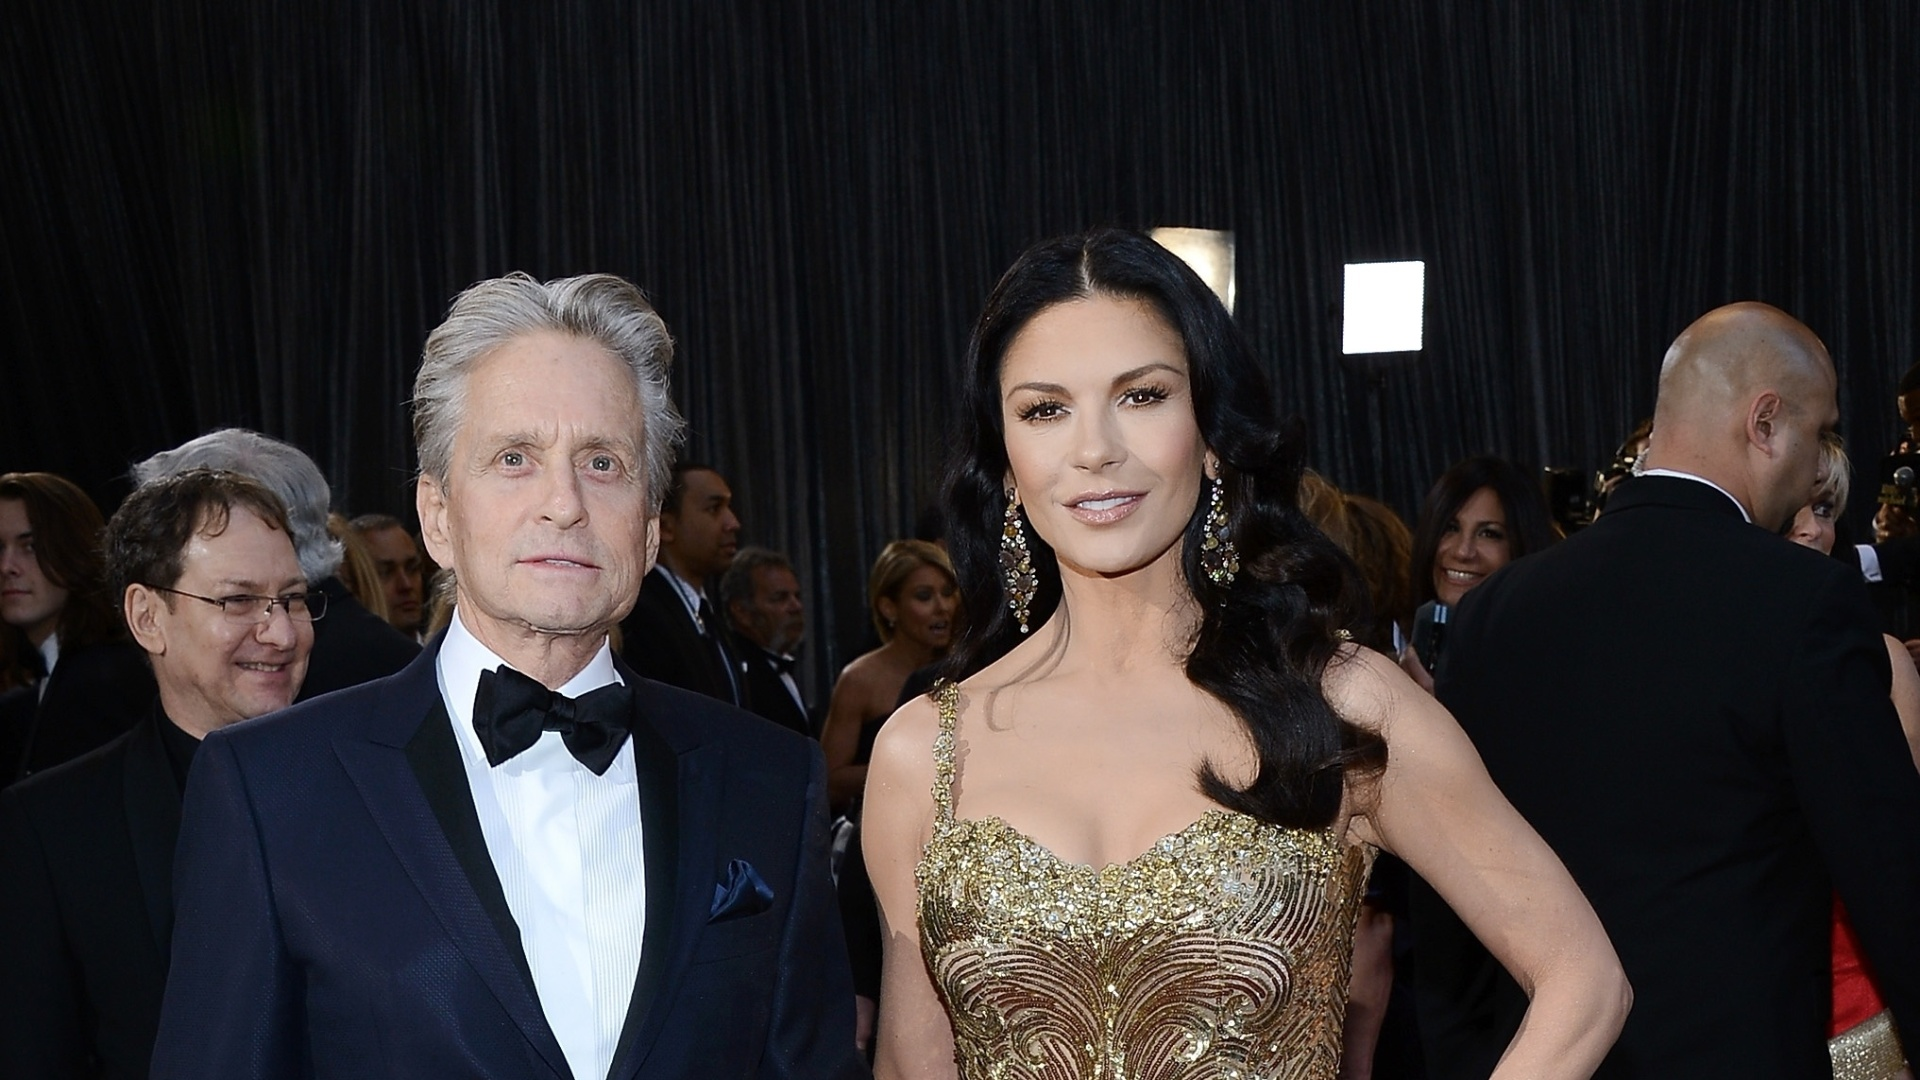 24.fev.2013 - Michael Douglas e Catherine Zeta-Jones chegam ao tapete vermelho do Oscar 2013